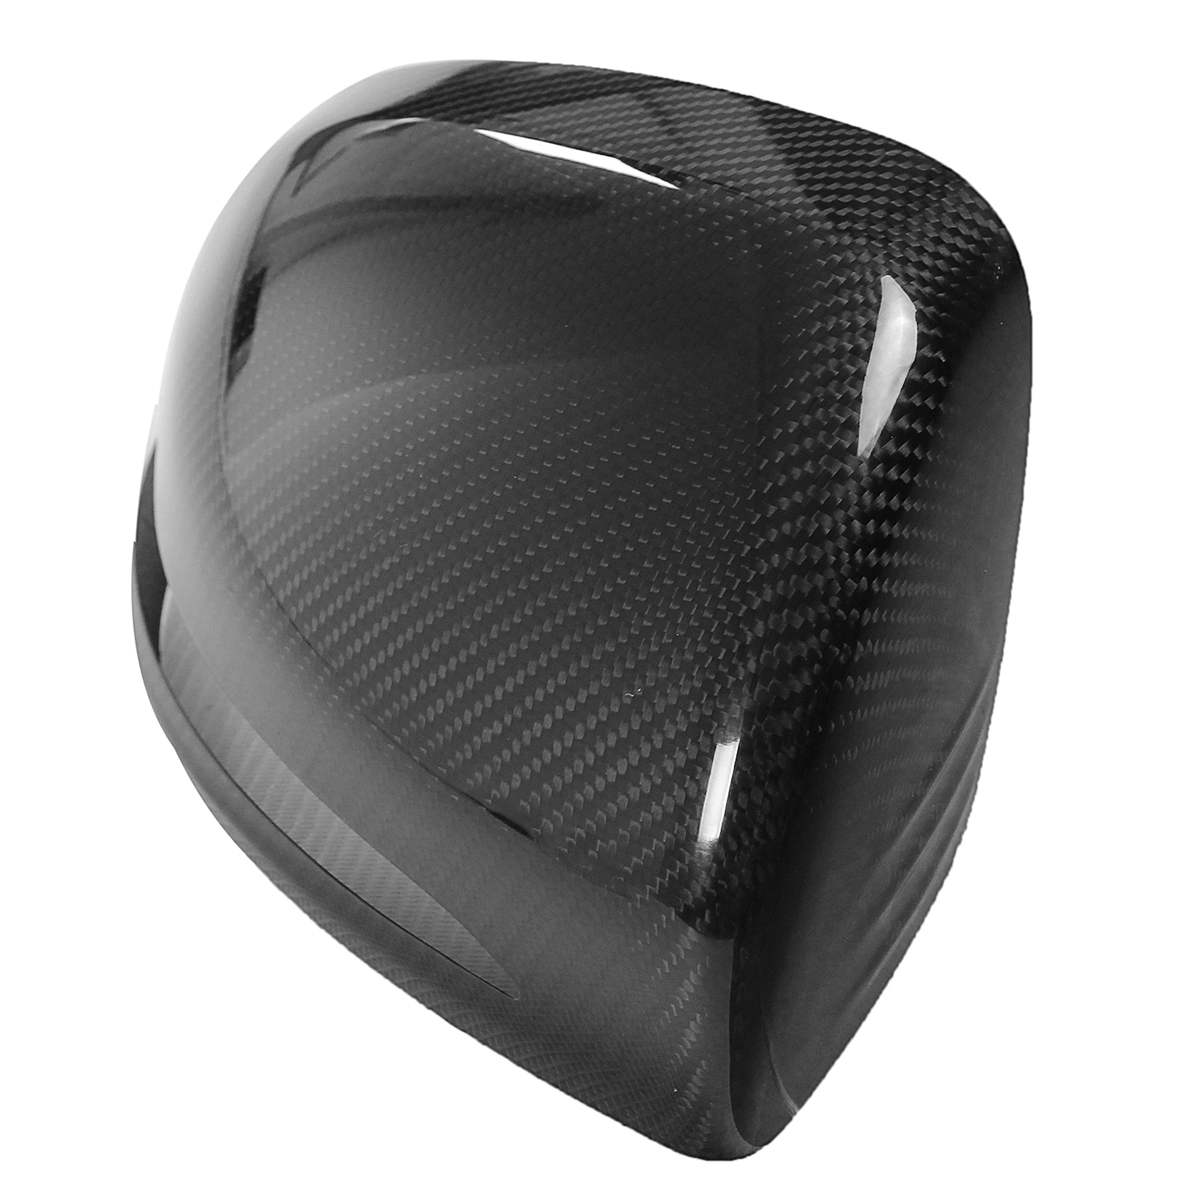 Add On Carbon Fiber Mirror Cover Caps For 2015-18 Mercedes Benz W205 C300 C400